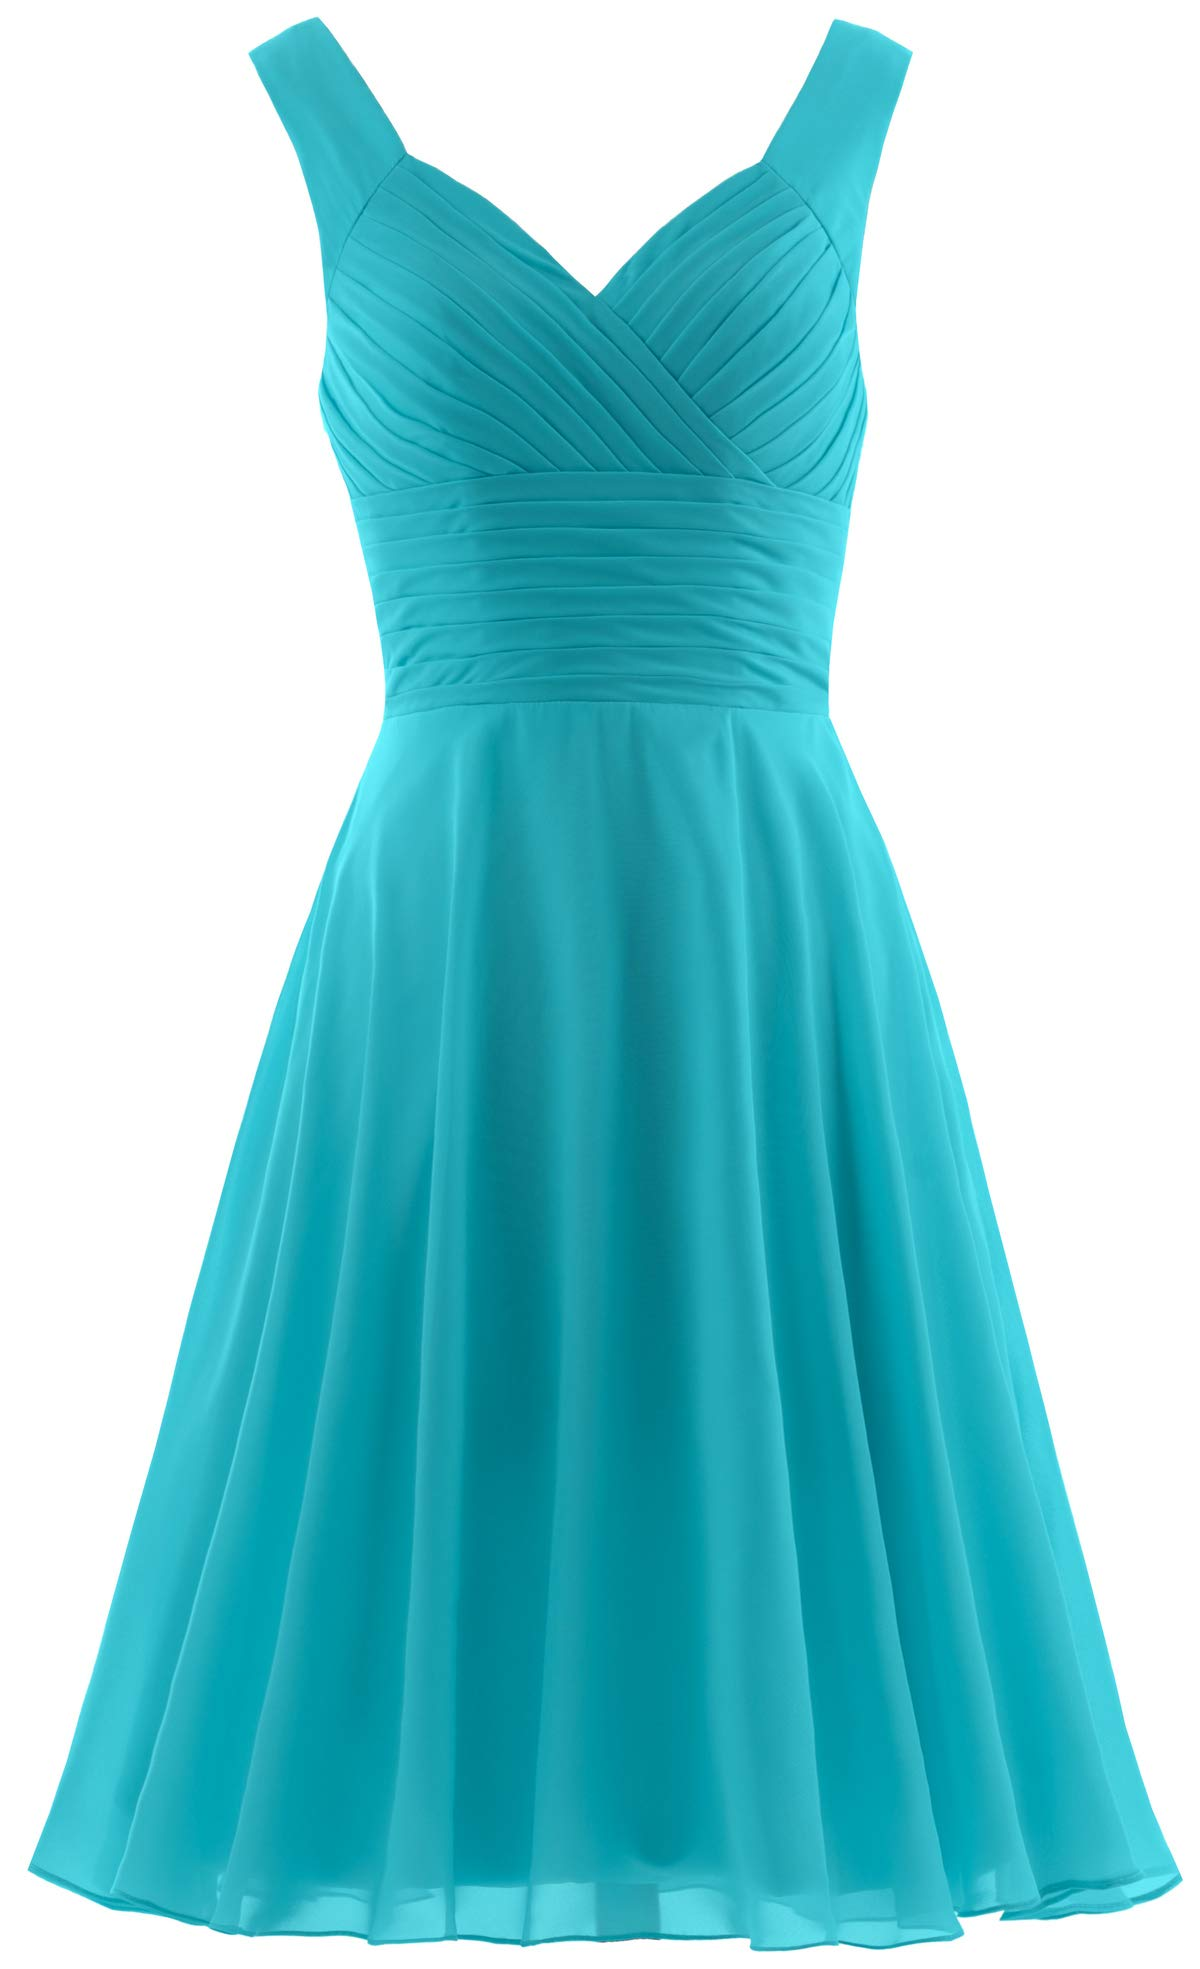 Available at Amazon: ANTS Women's Pleated Sweetheart Bridesmaid Dresses A Line Cocktail Gown